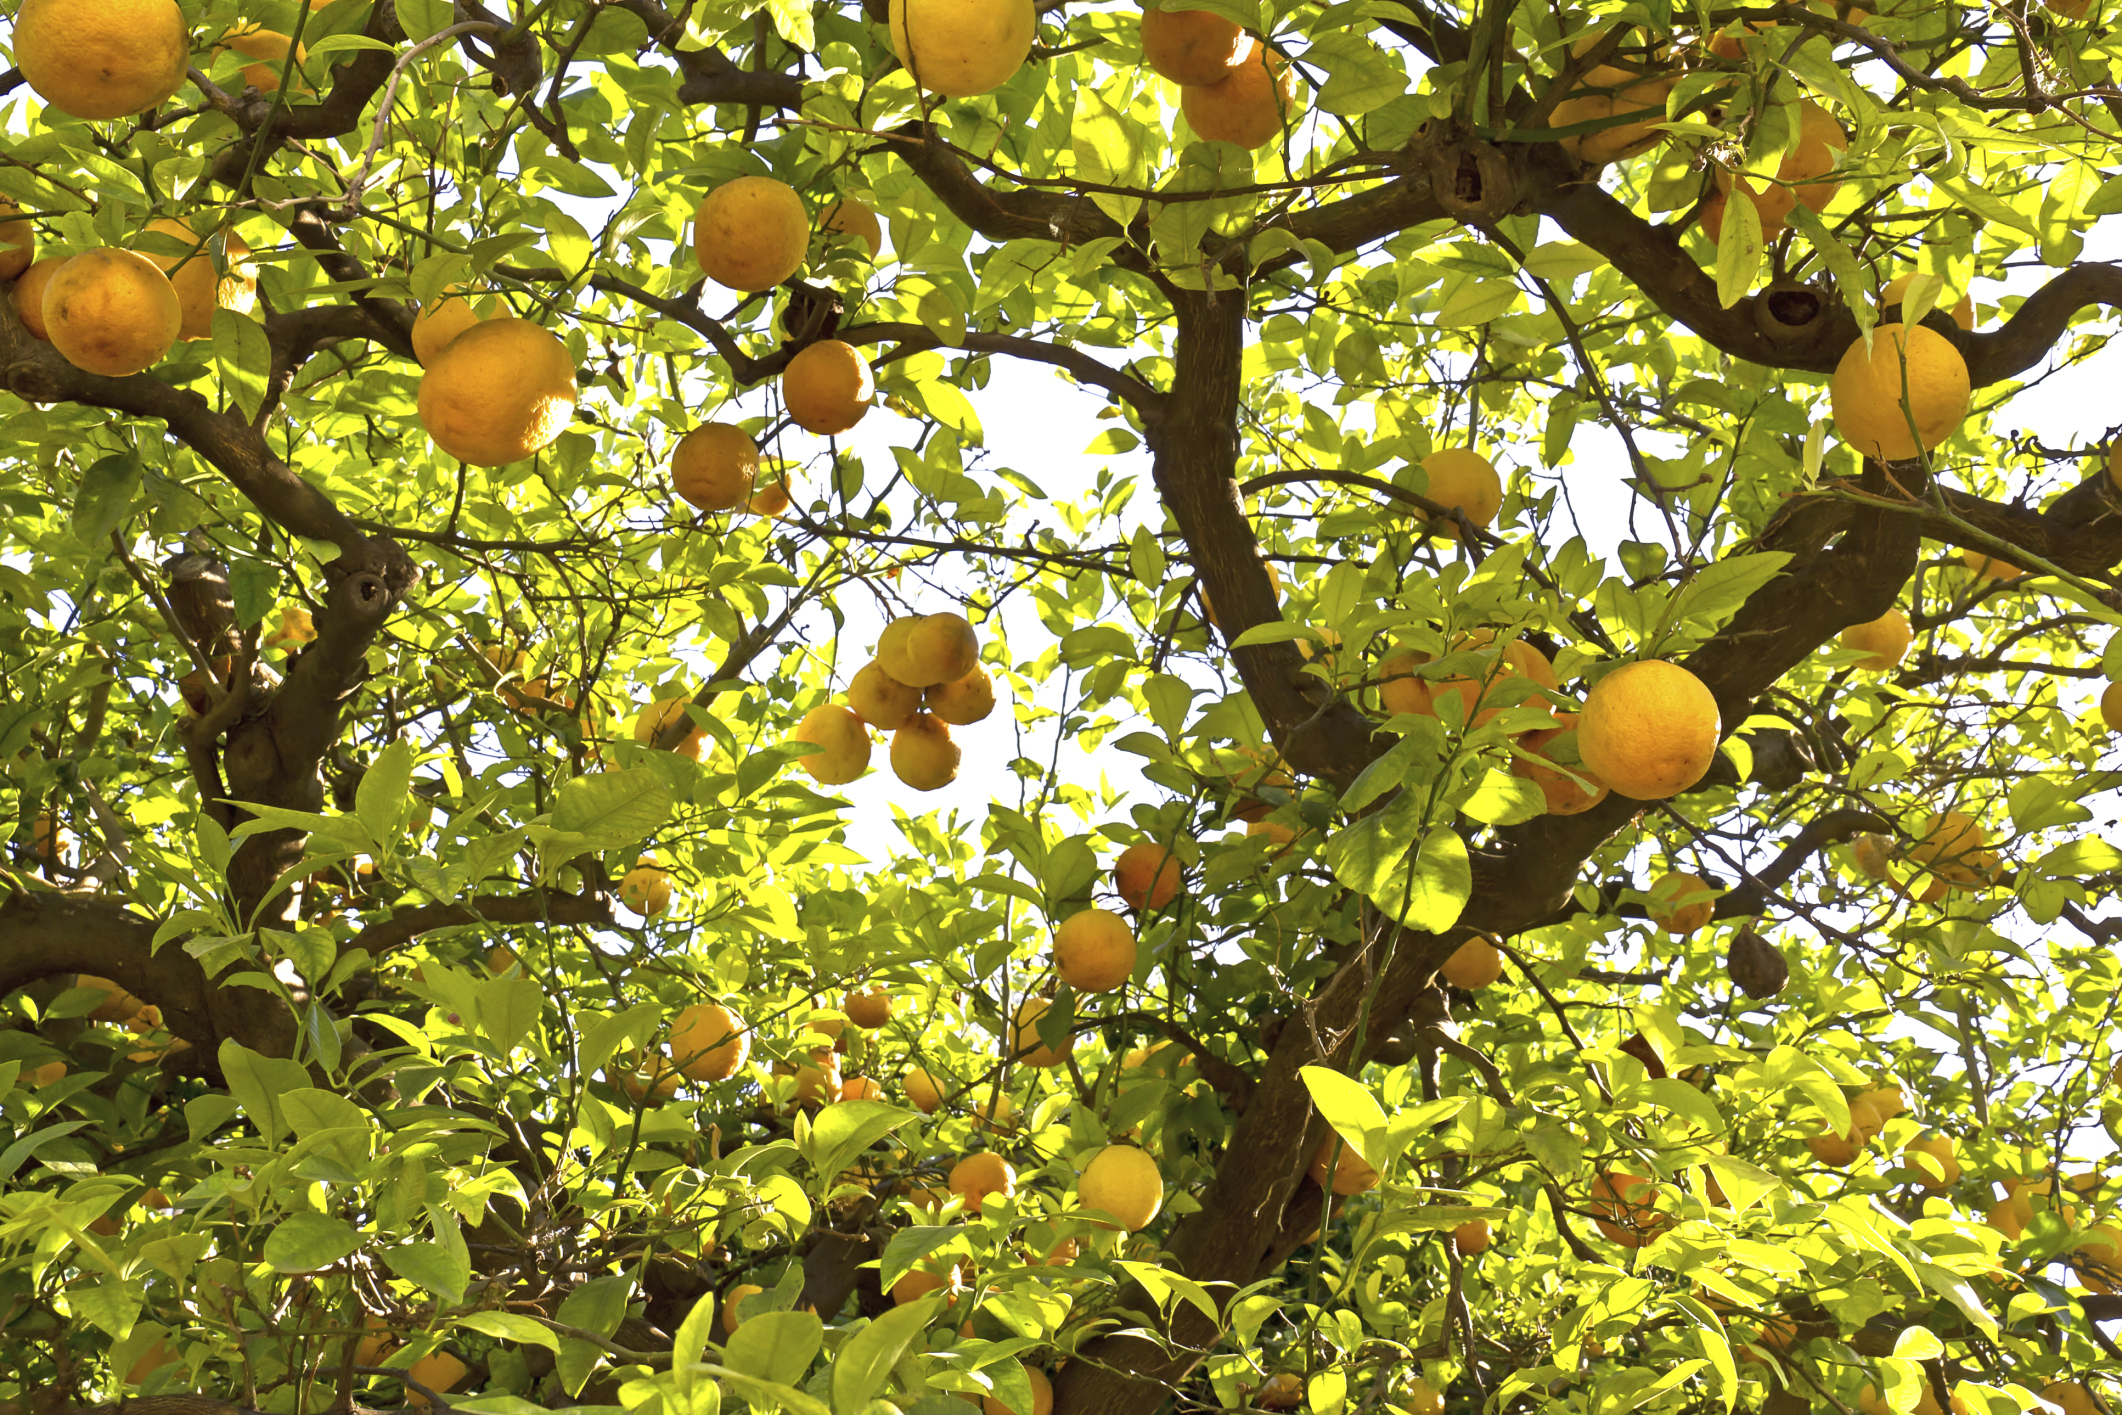 The life cycle of a citrus tree ehow for Lemon plant images